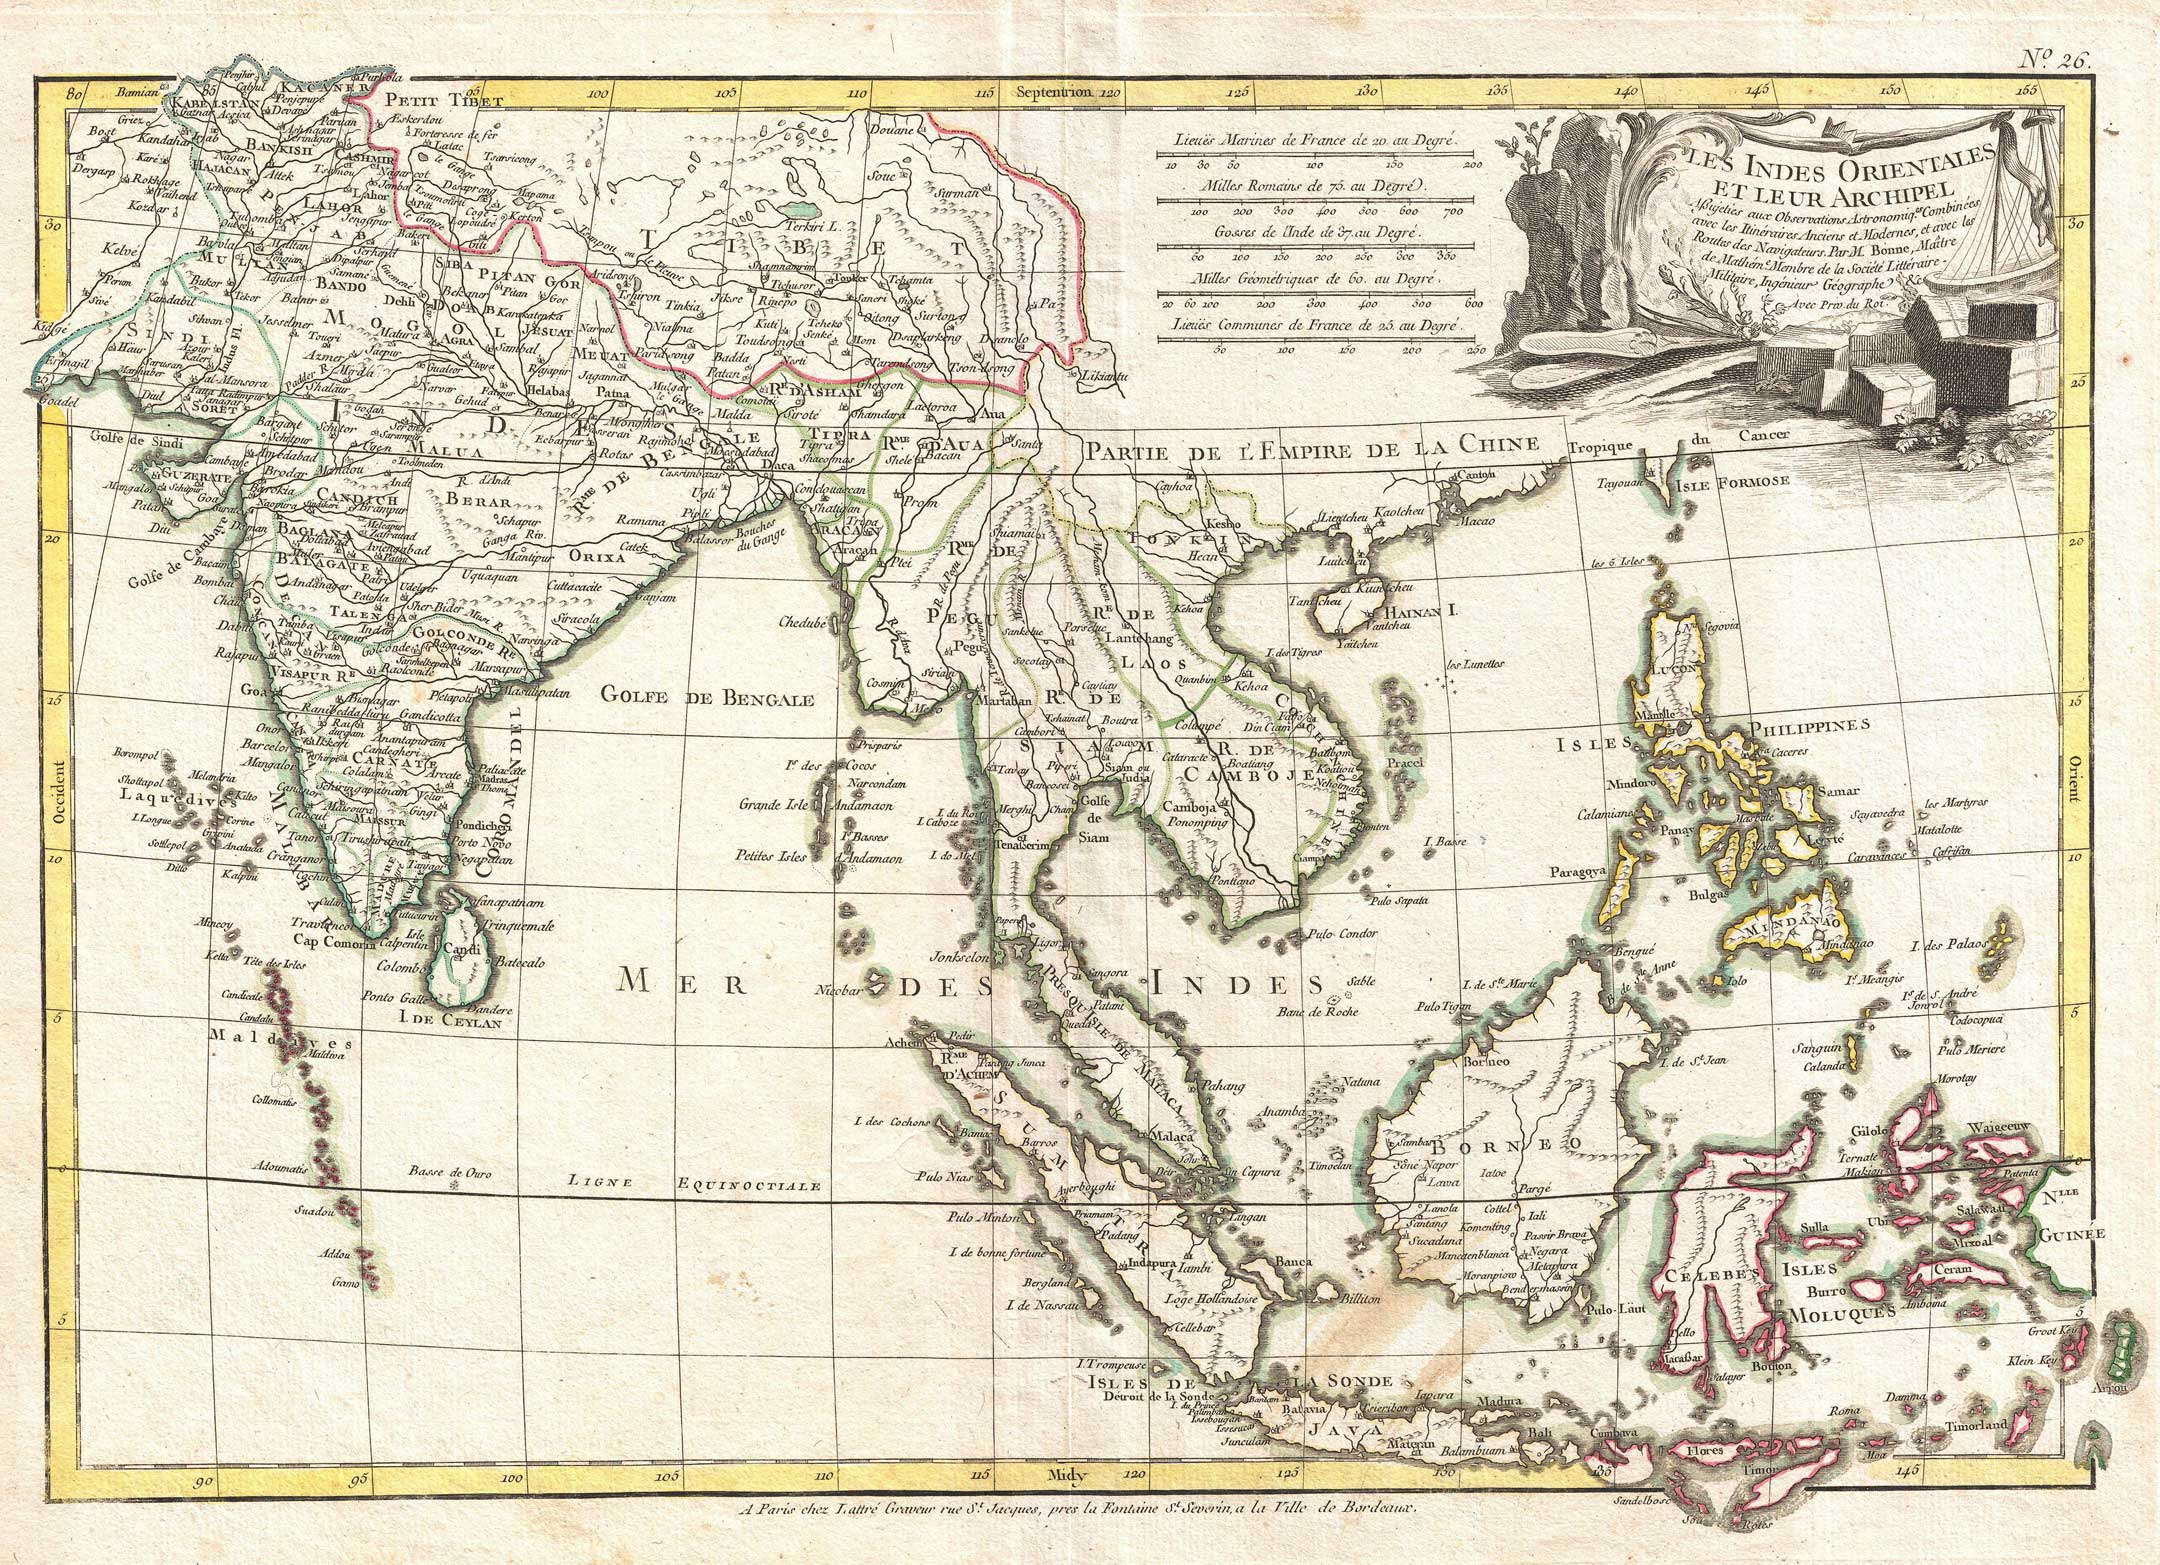 Rigobert Bonne's c. 1770 map of India, Southeast Asia and the East Indies - Wikipediaより